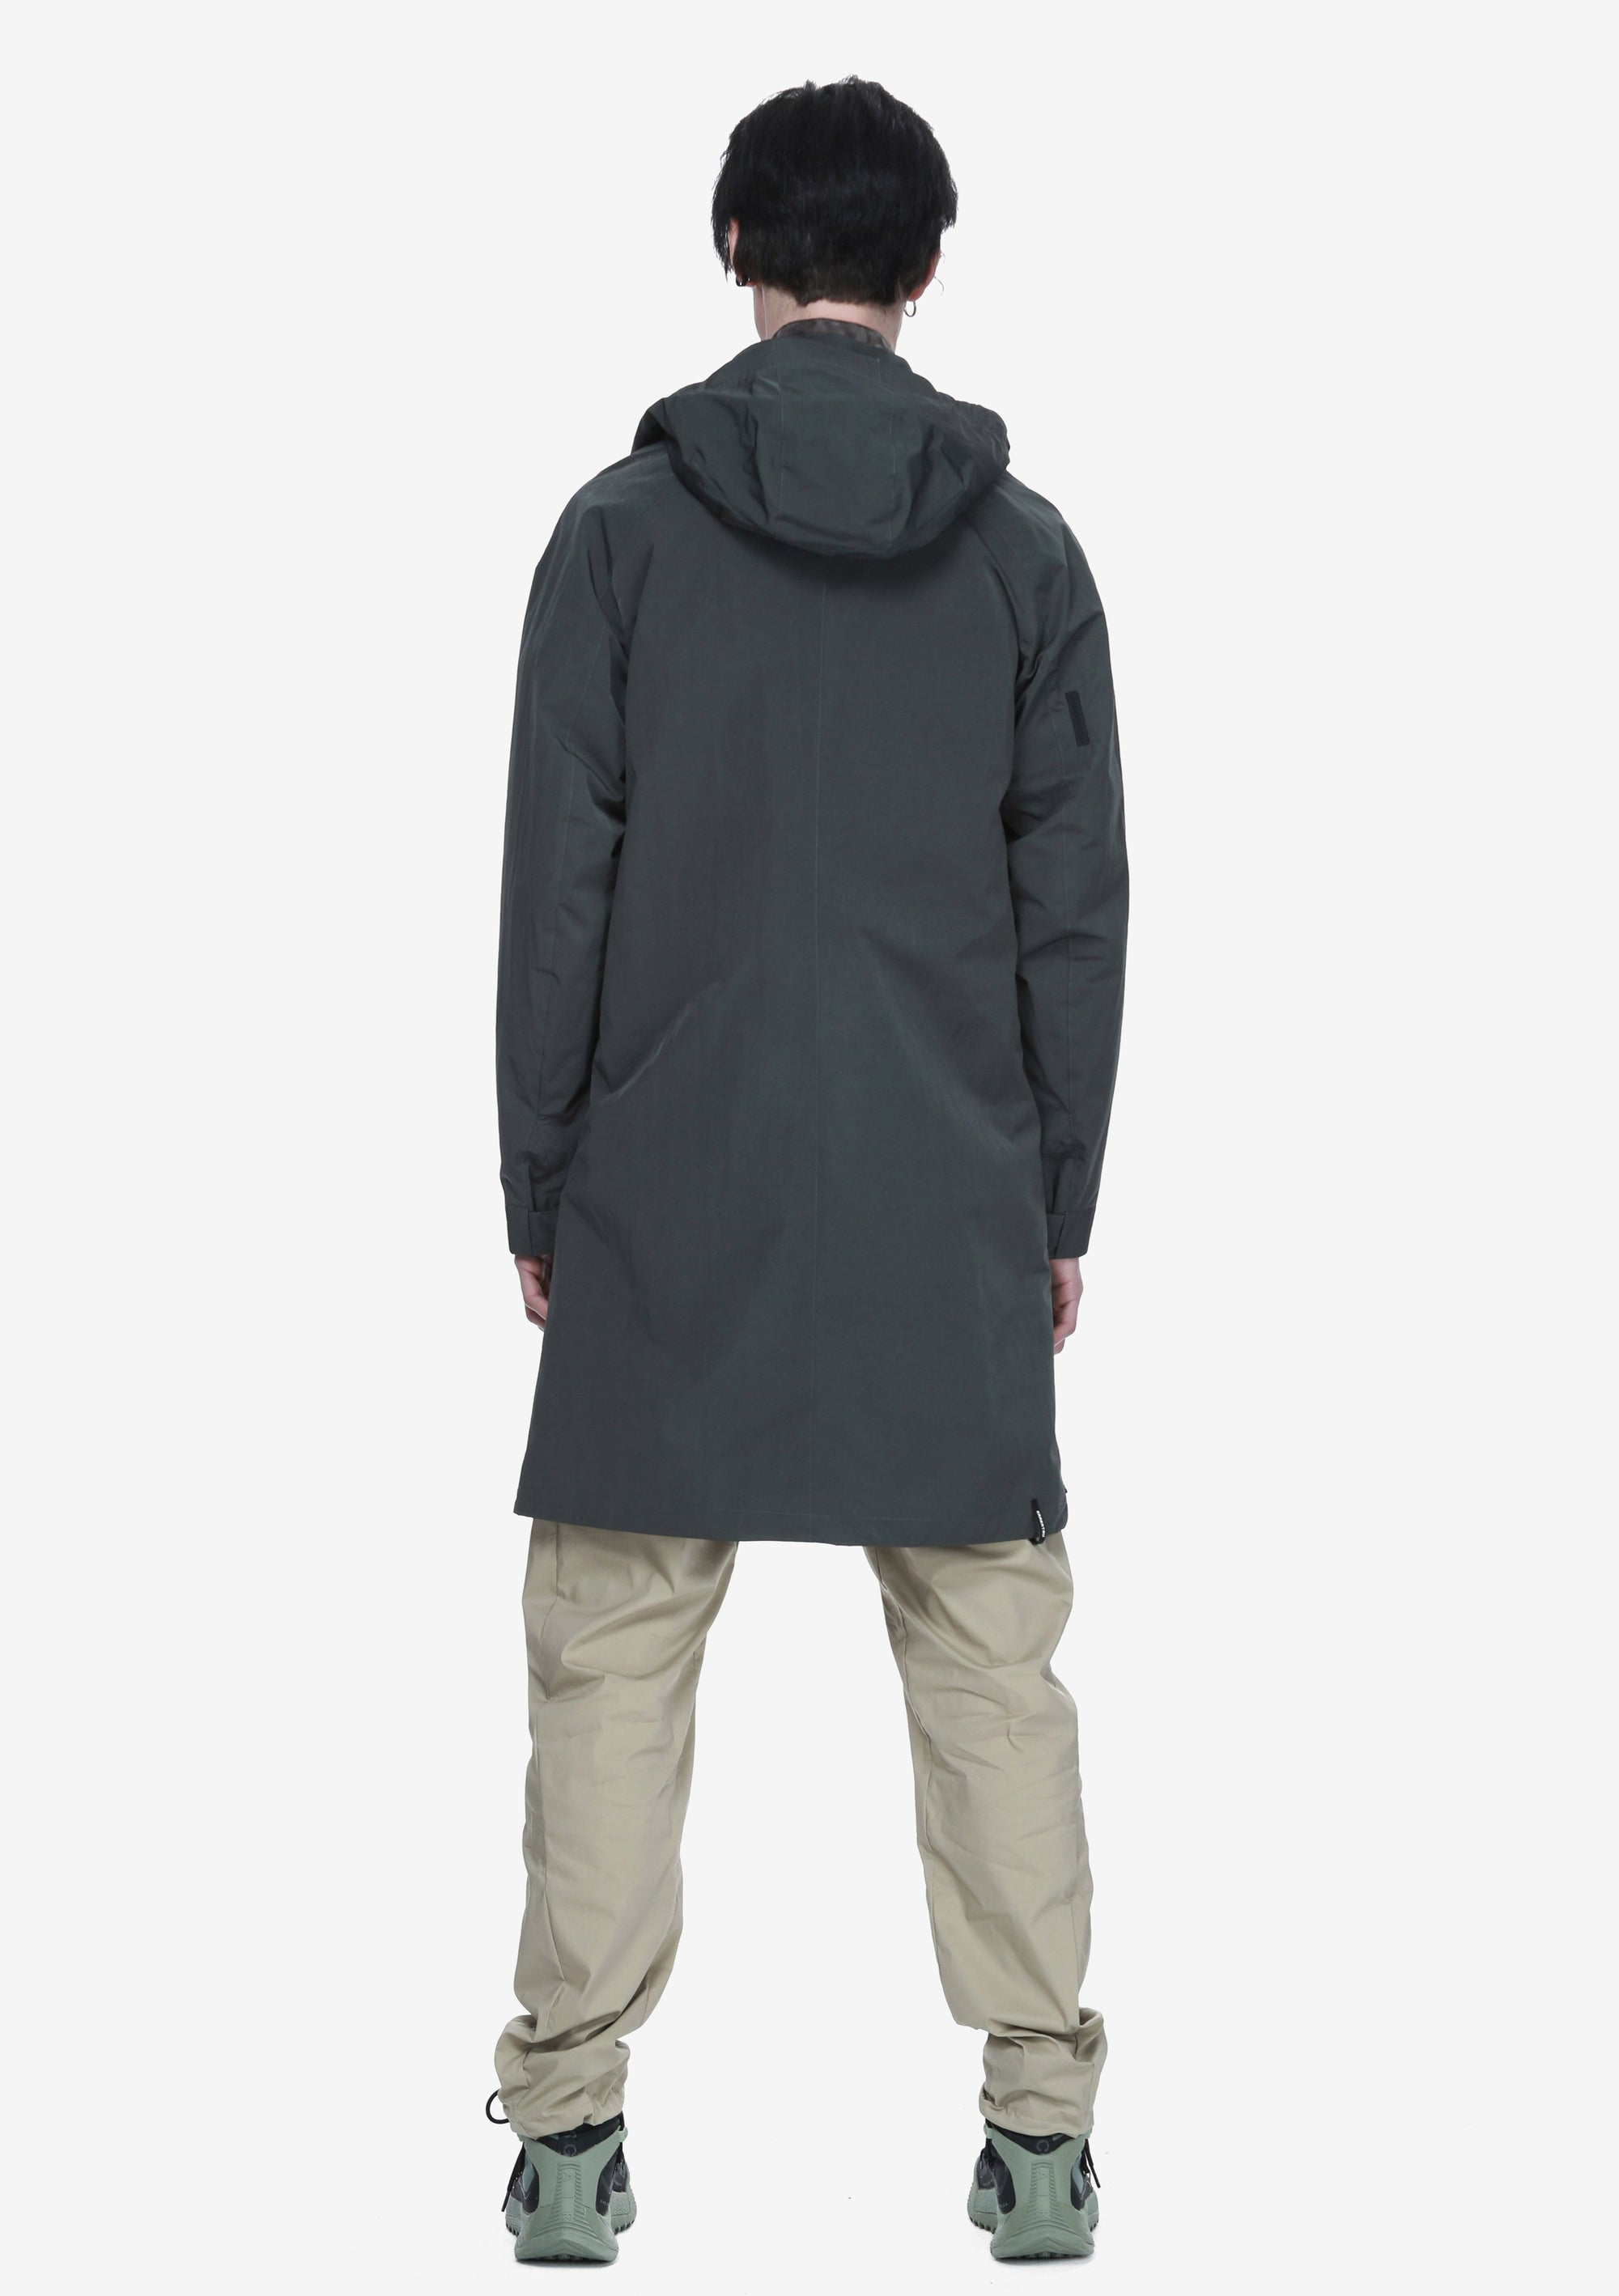 Hooded Trench Coat Qm285-52 MASARU